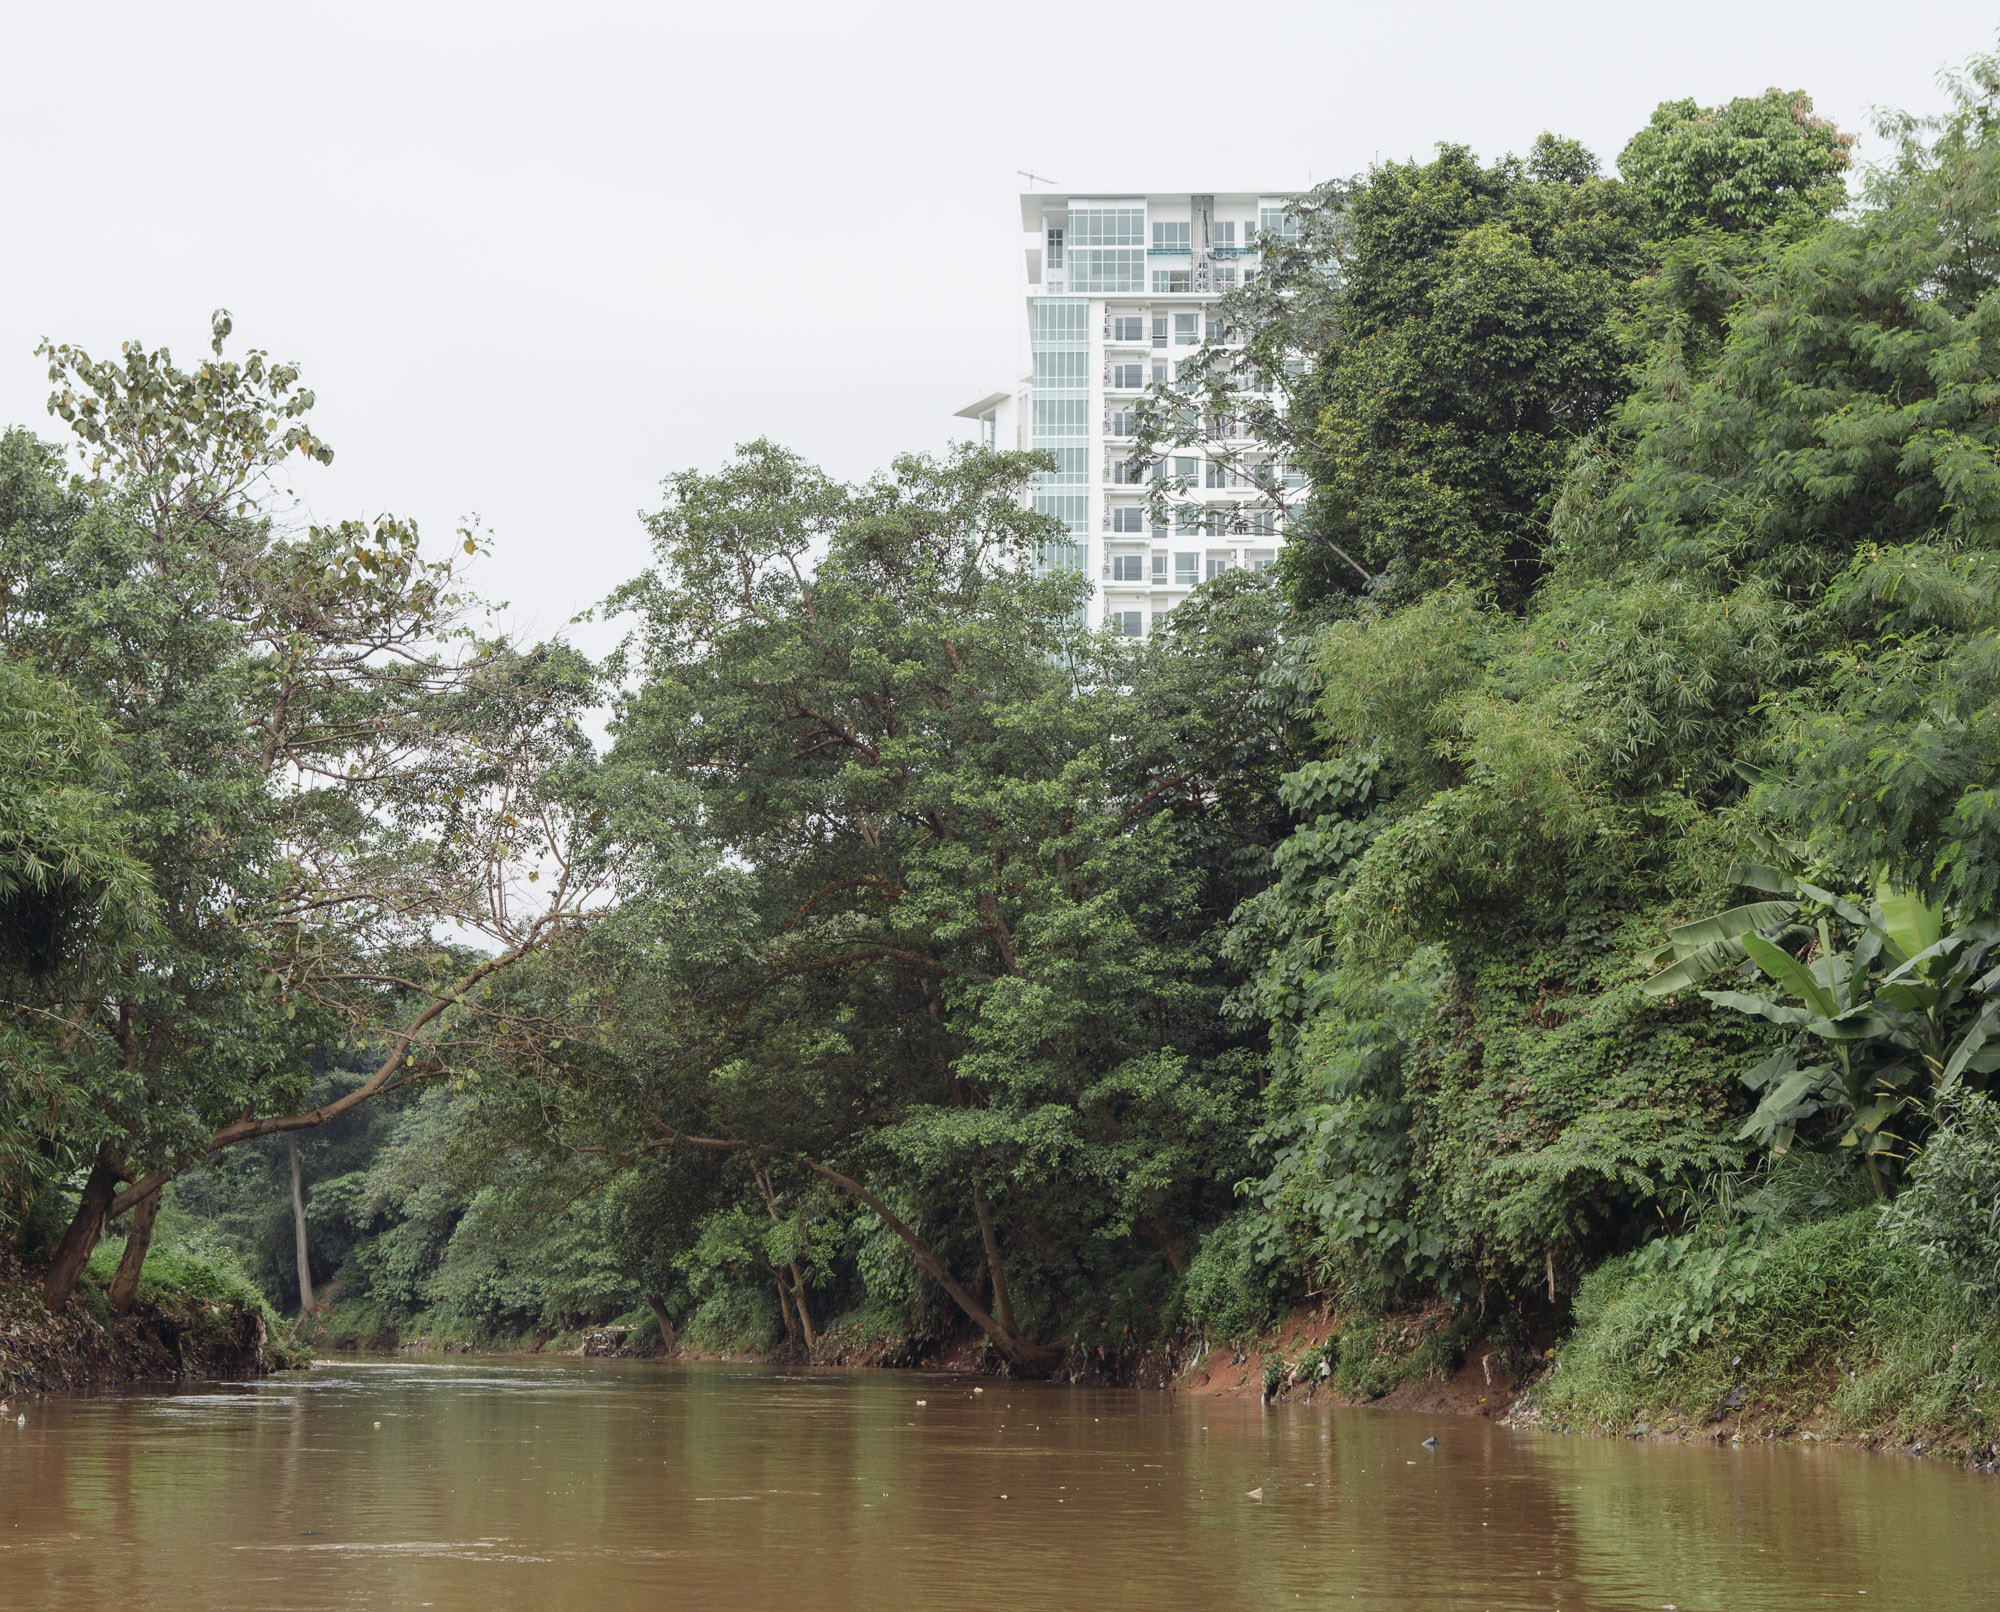 The Ciliwung Riveris one among 13 rivers that run through Jakarta. It is also one that experiences frequent flooding during the rainy season, as the lower part of the river is packed with informal housing. Pictured here is the less-developed upper part of Ciliwung in South Jakarta. (Photo by Muhammad Fadli/GroundTruth)